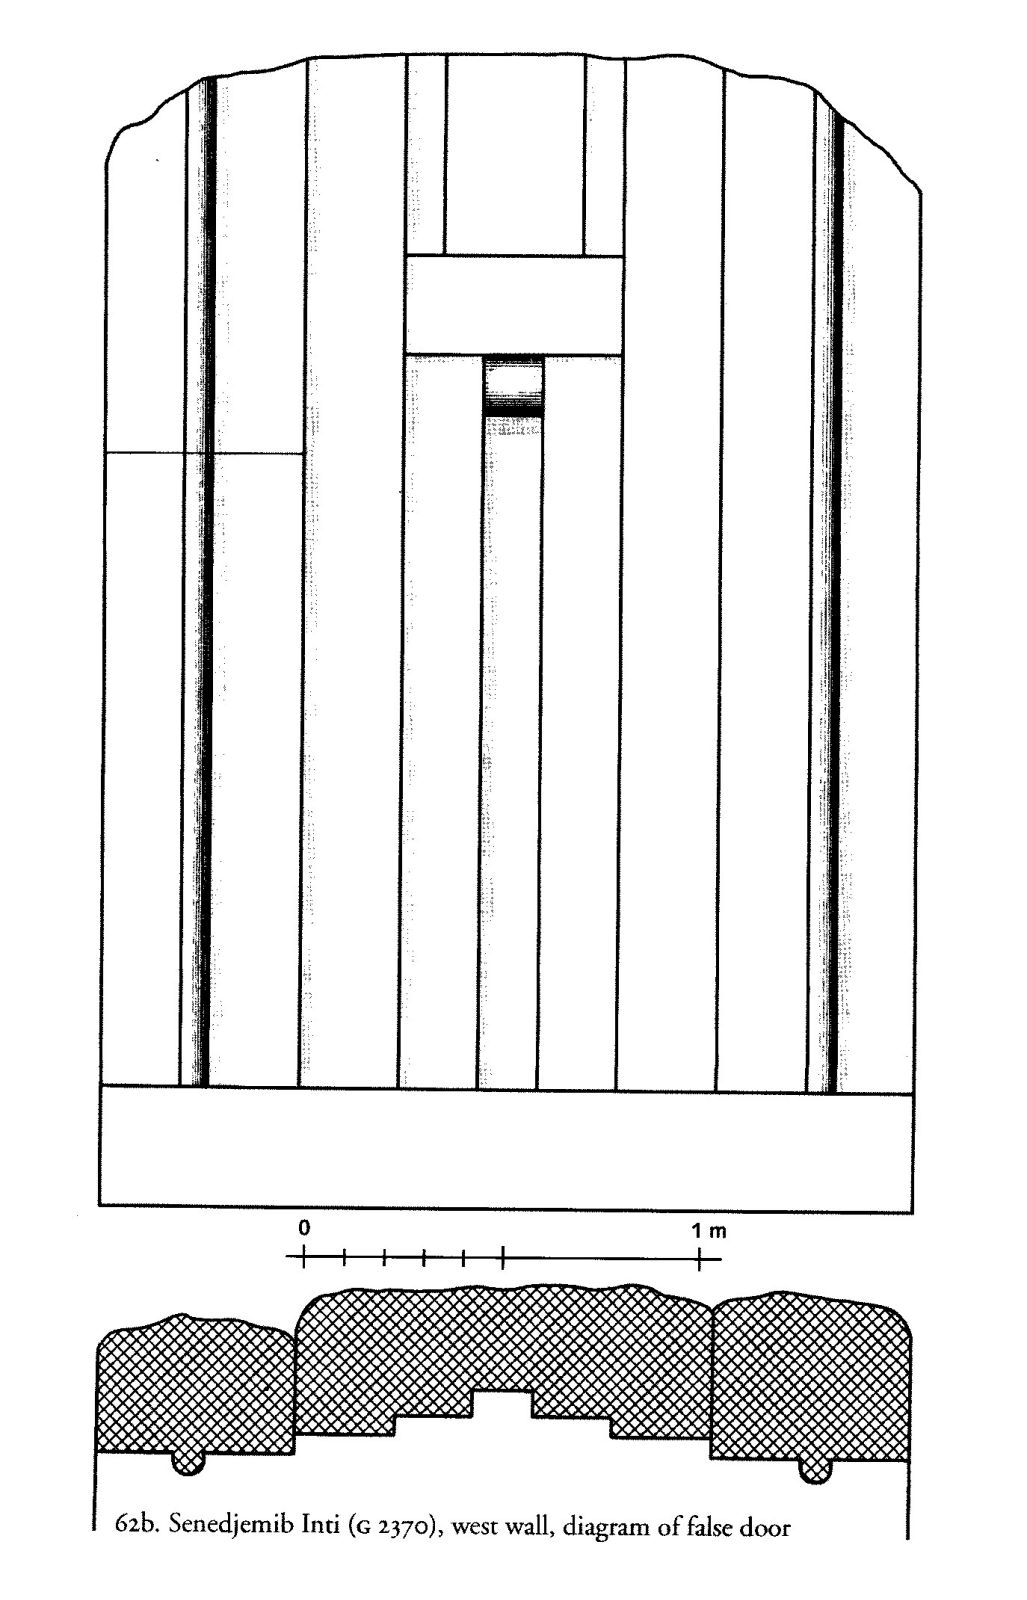 Drawings: G 2370, Plan and elevation of false door